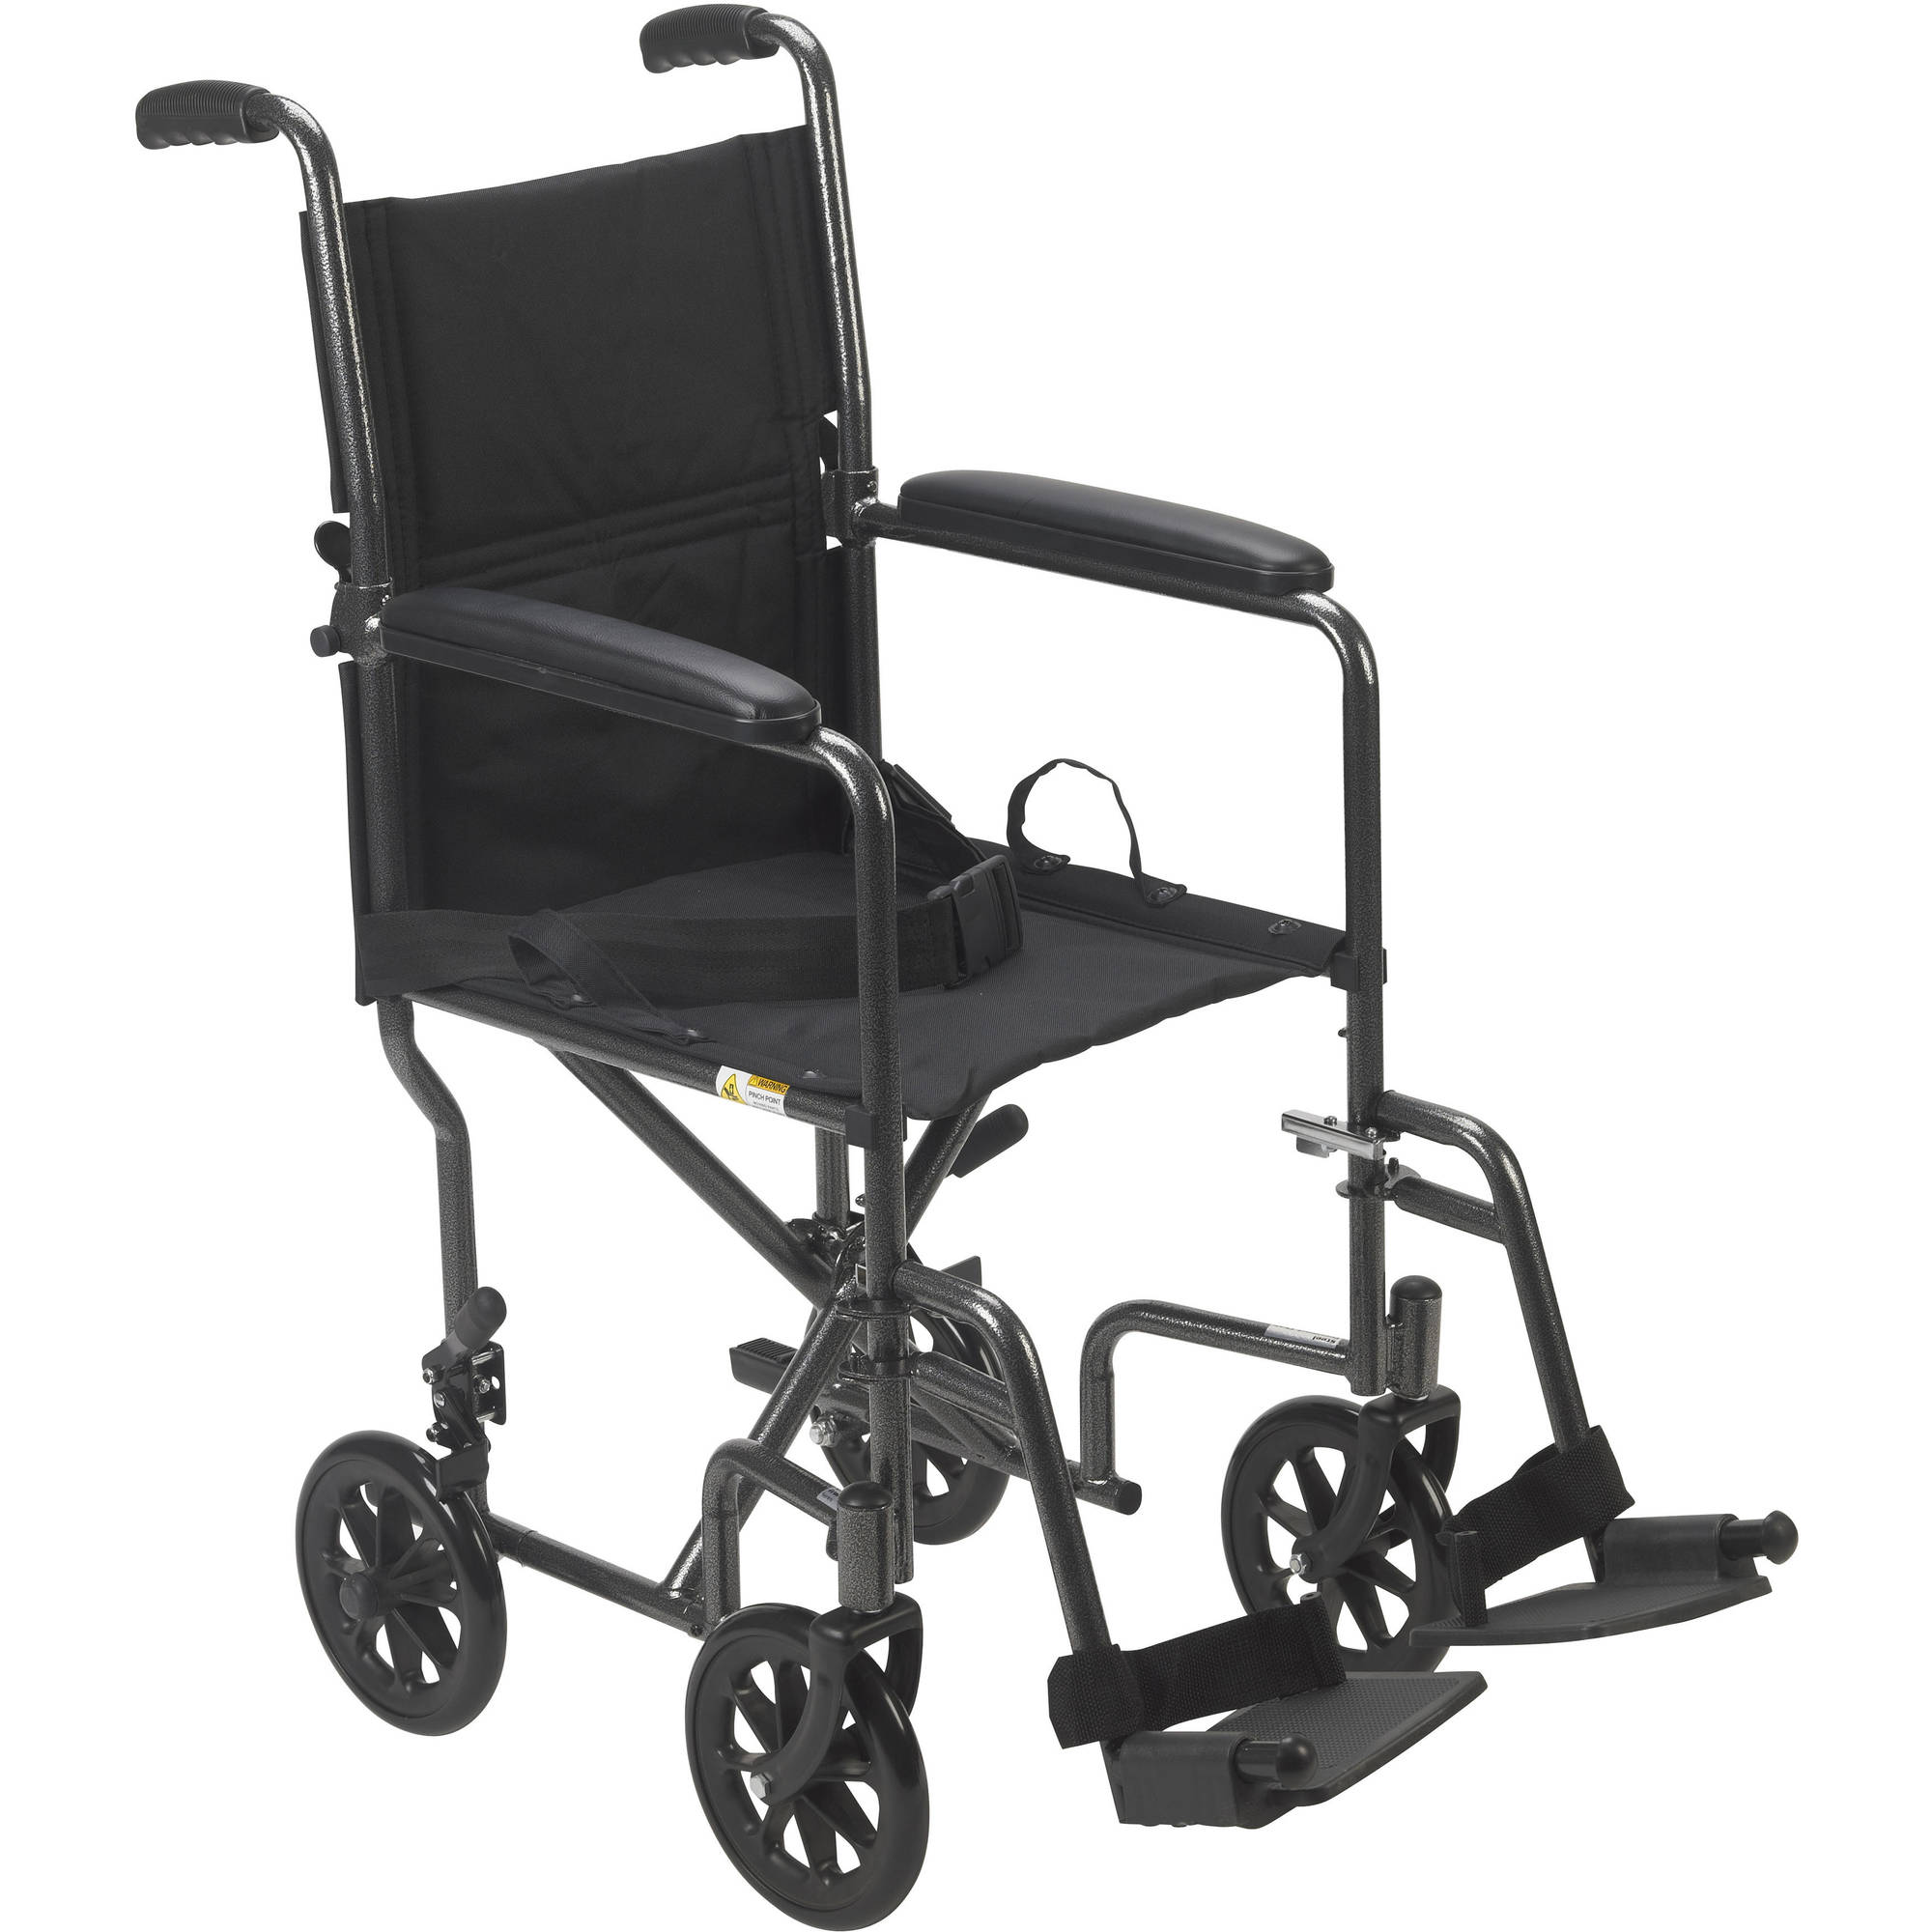 transport wheel chair bow arm morris plans drive medical fly lite ultra lightweight wheelchair black walmart com